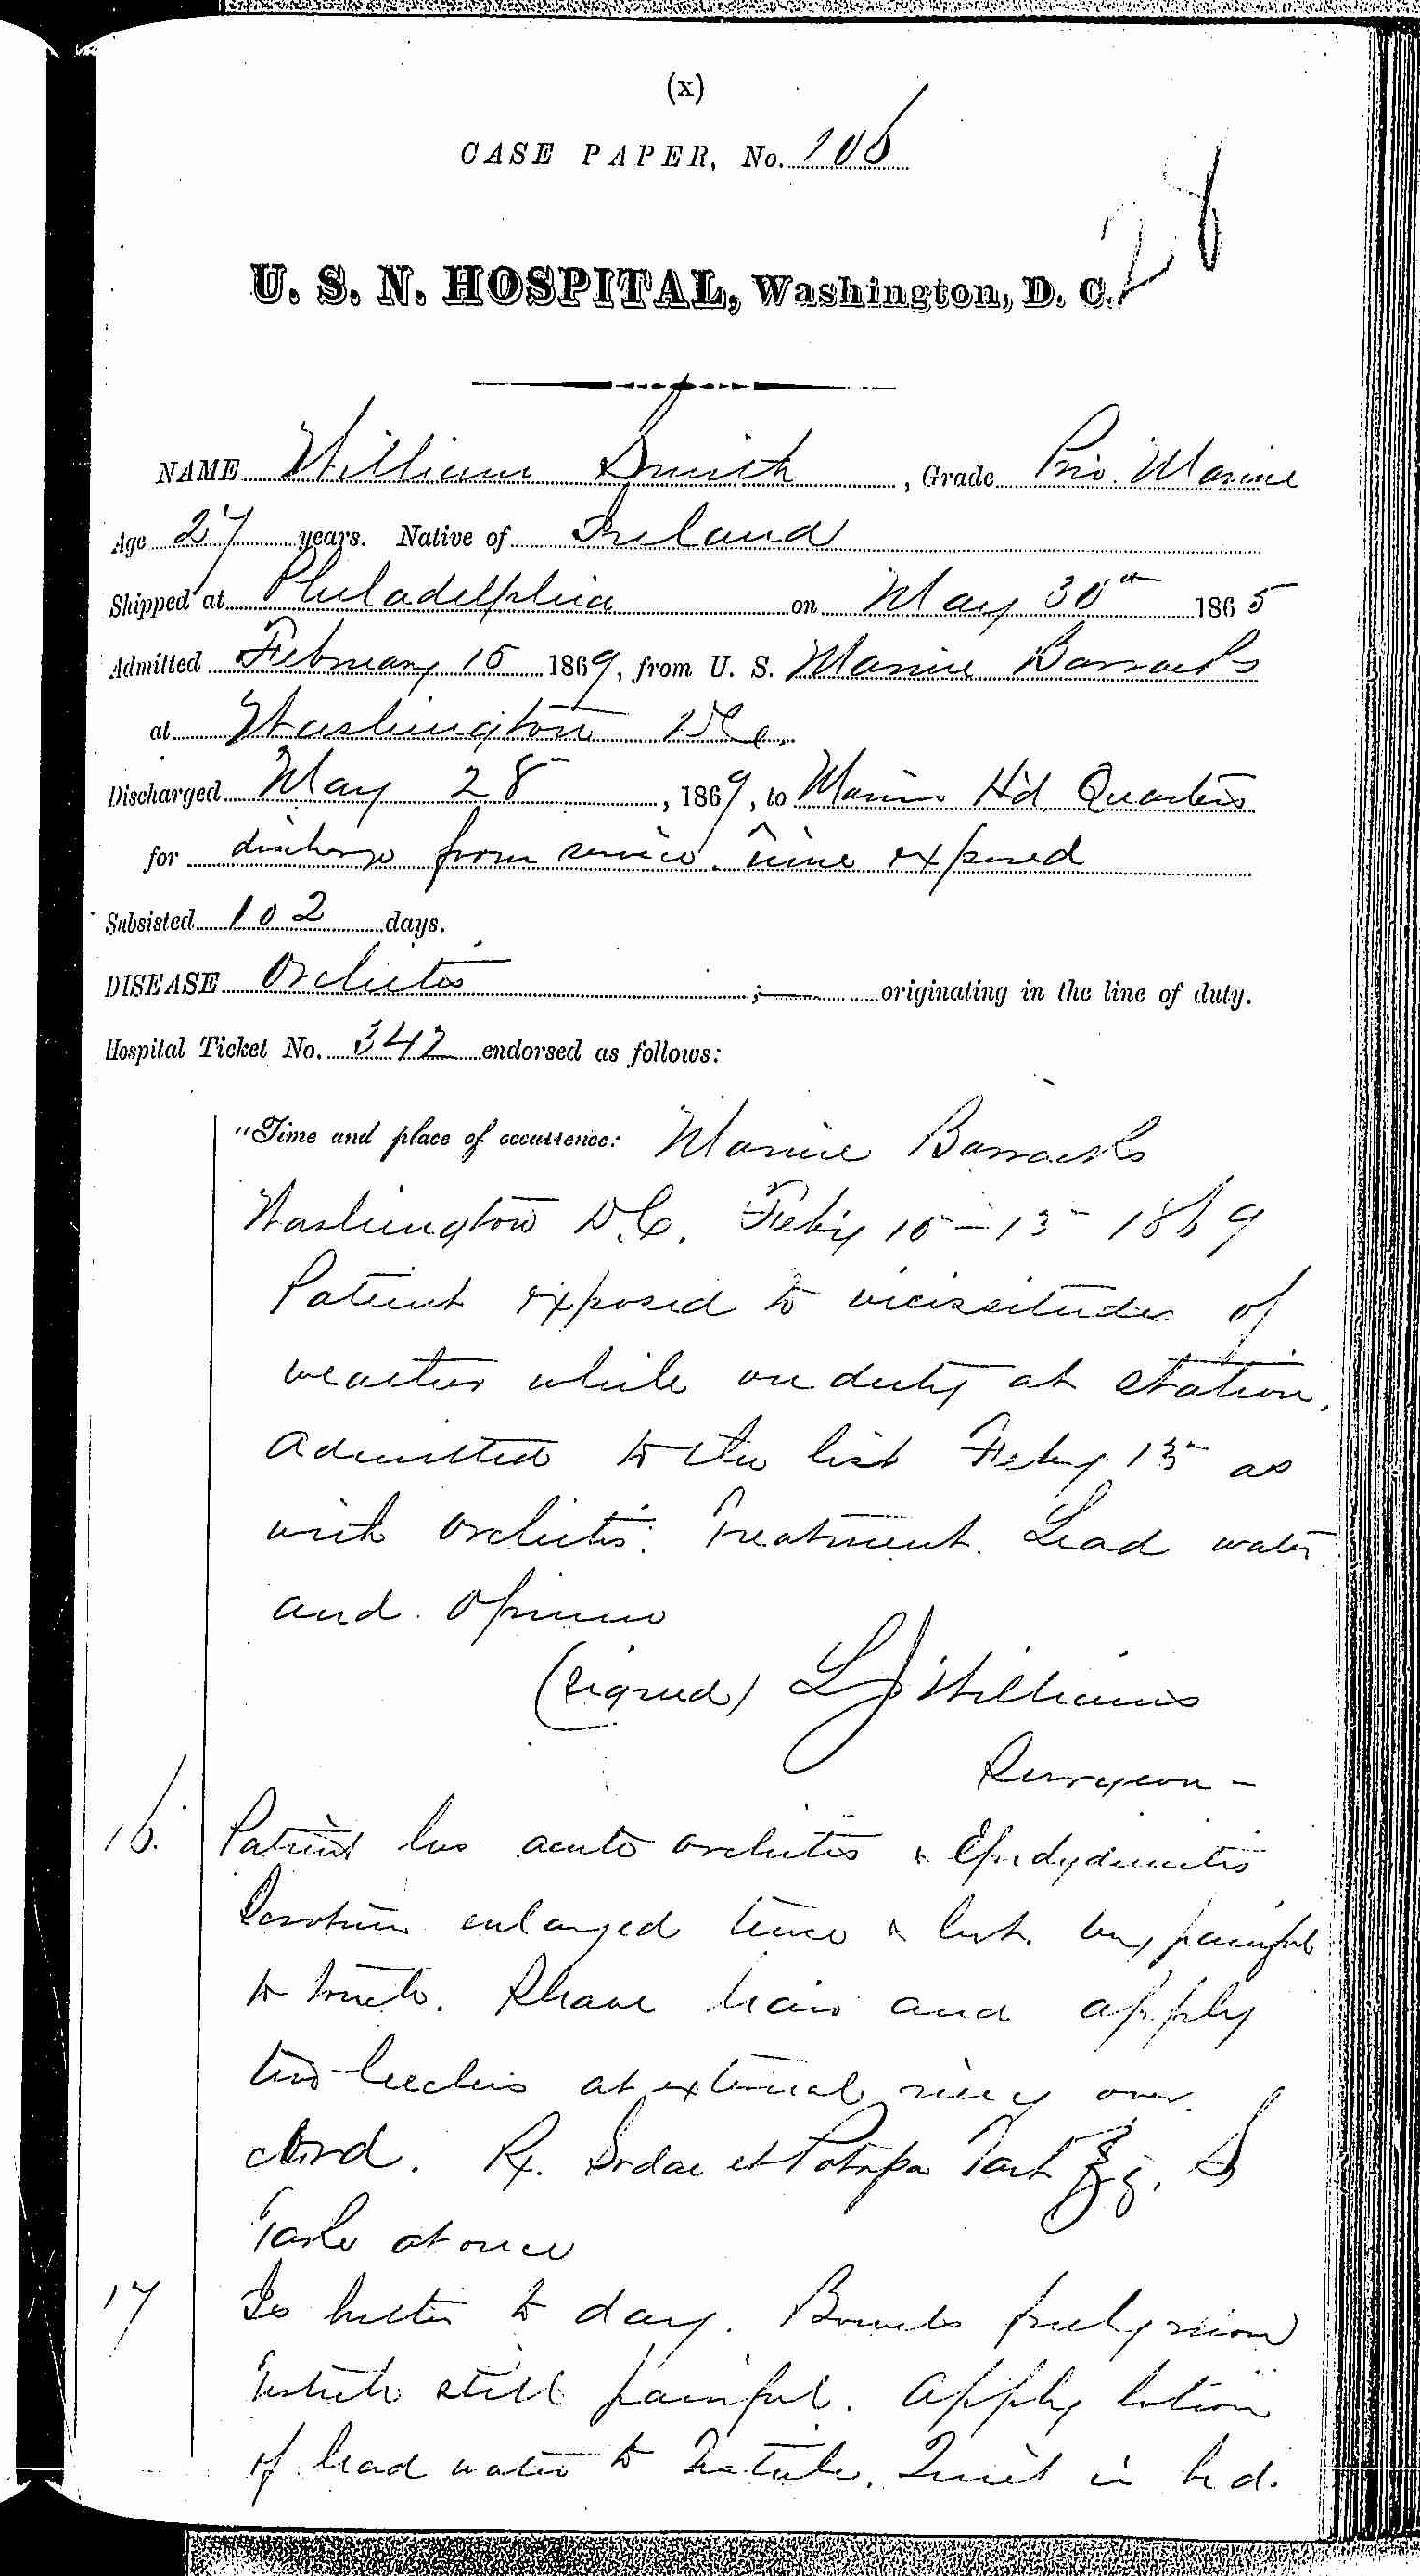 Entry for William Smith (page 1 of 3) in the log Hospital Tickets and Case Papers - Naval Hospital - Washington, D.C. - 1868-69